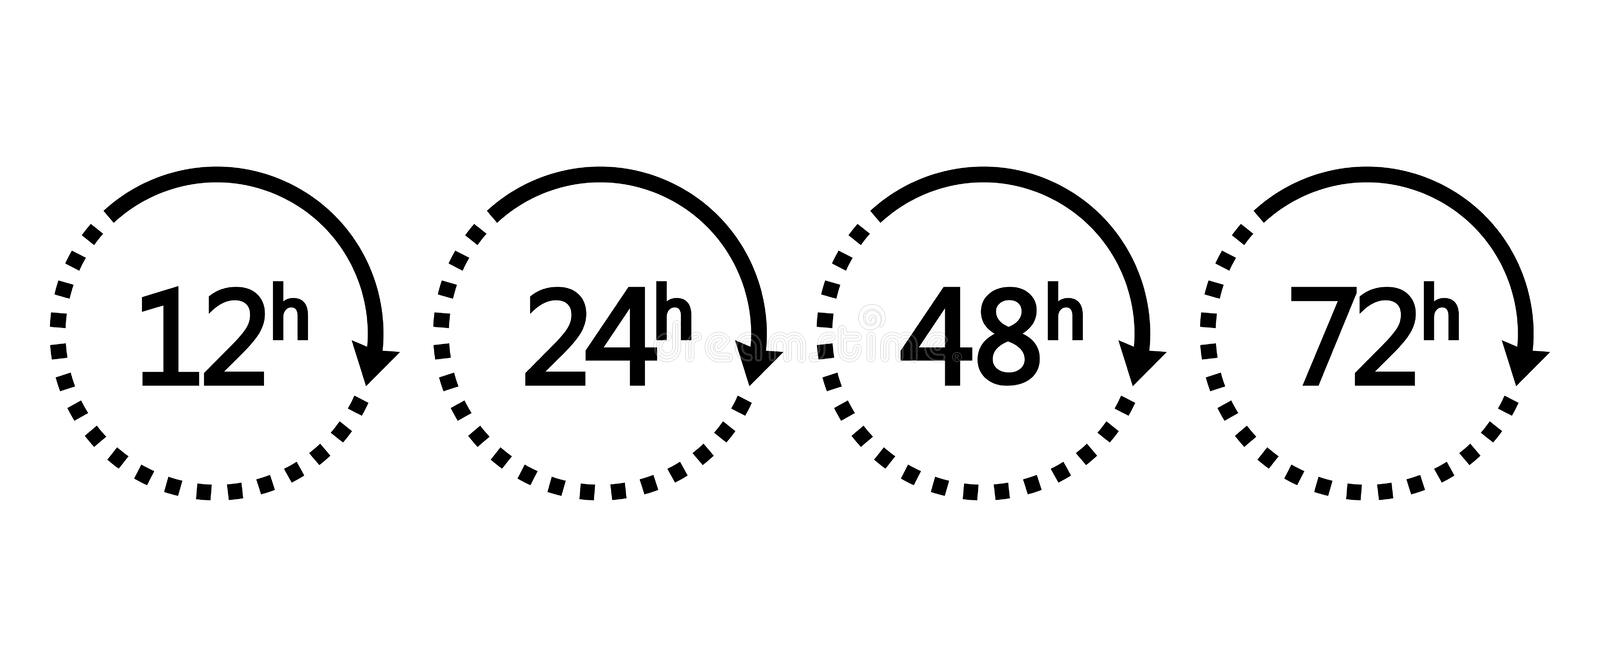 12, 24, 48 and 72 hours clock arrows. Set of black icons work time or delivery service time. Vector. Illustration royalty free illustration